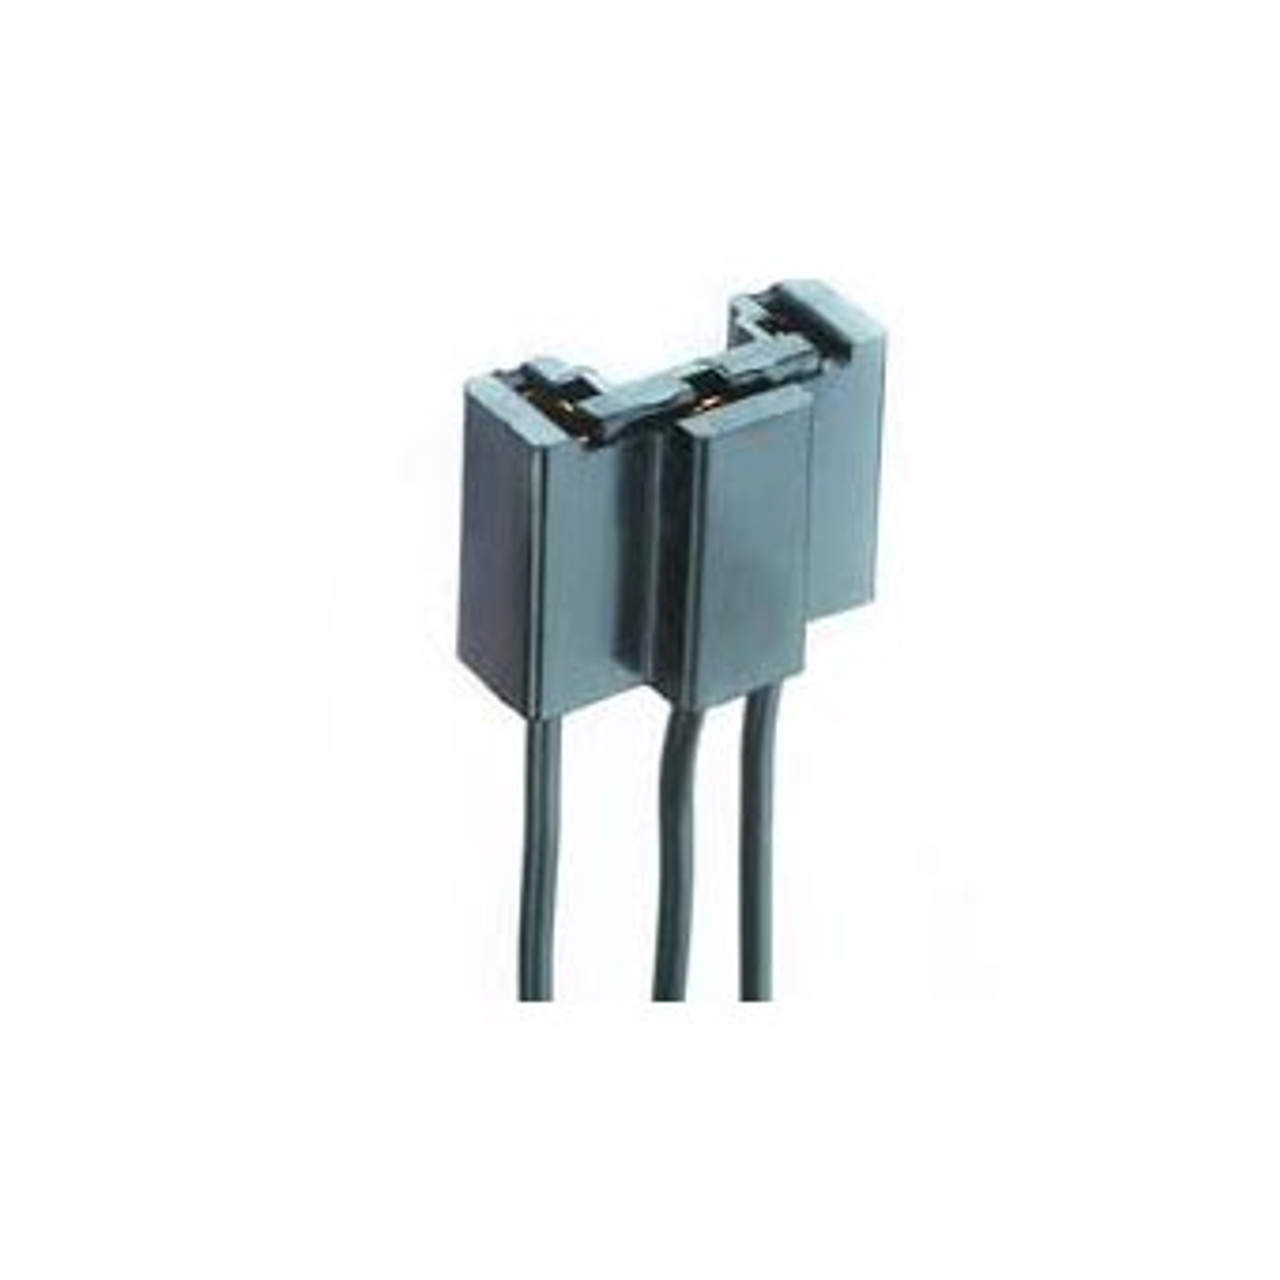 DIMMER SWITCH CONNECTOR RECEPTACLE